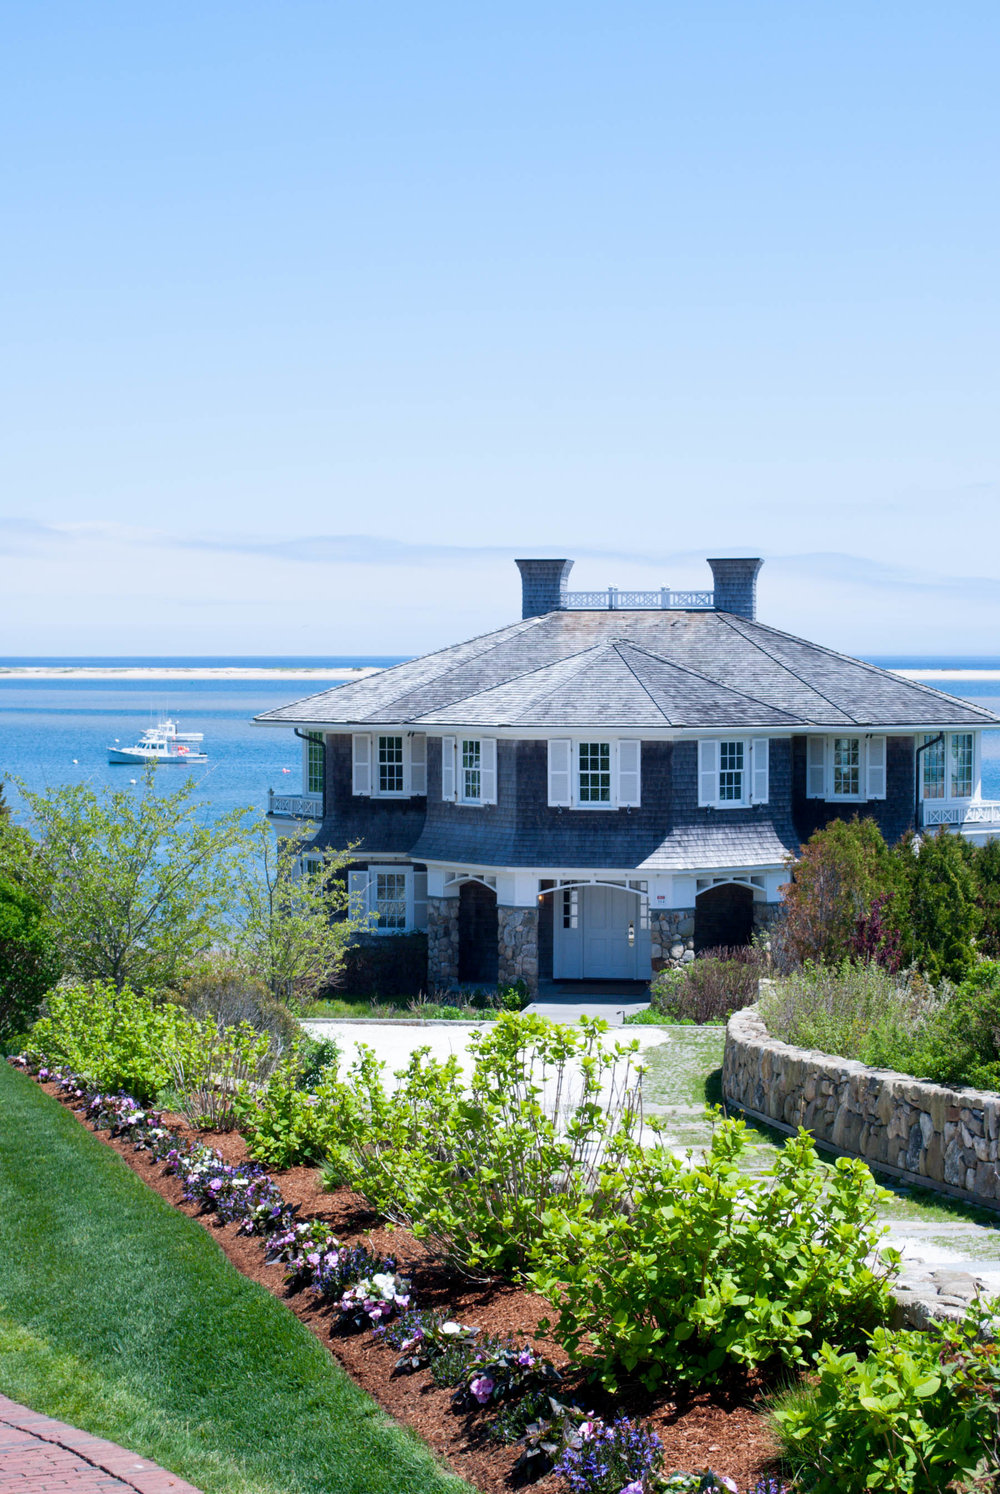 Beach house Chatham, Massachusetts — Thinking of taking a Cape Cod vacation? Stay in Chatham, Massachusetts for a relaxing beach vacation with your family and friends. This travel guide will tell you how to get there, where to stay, what to do, and what to eat!